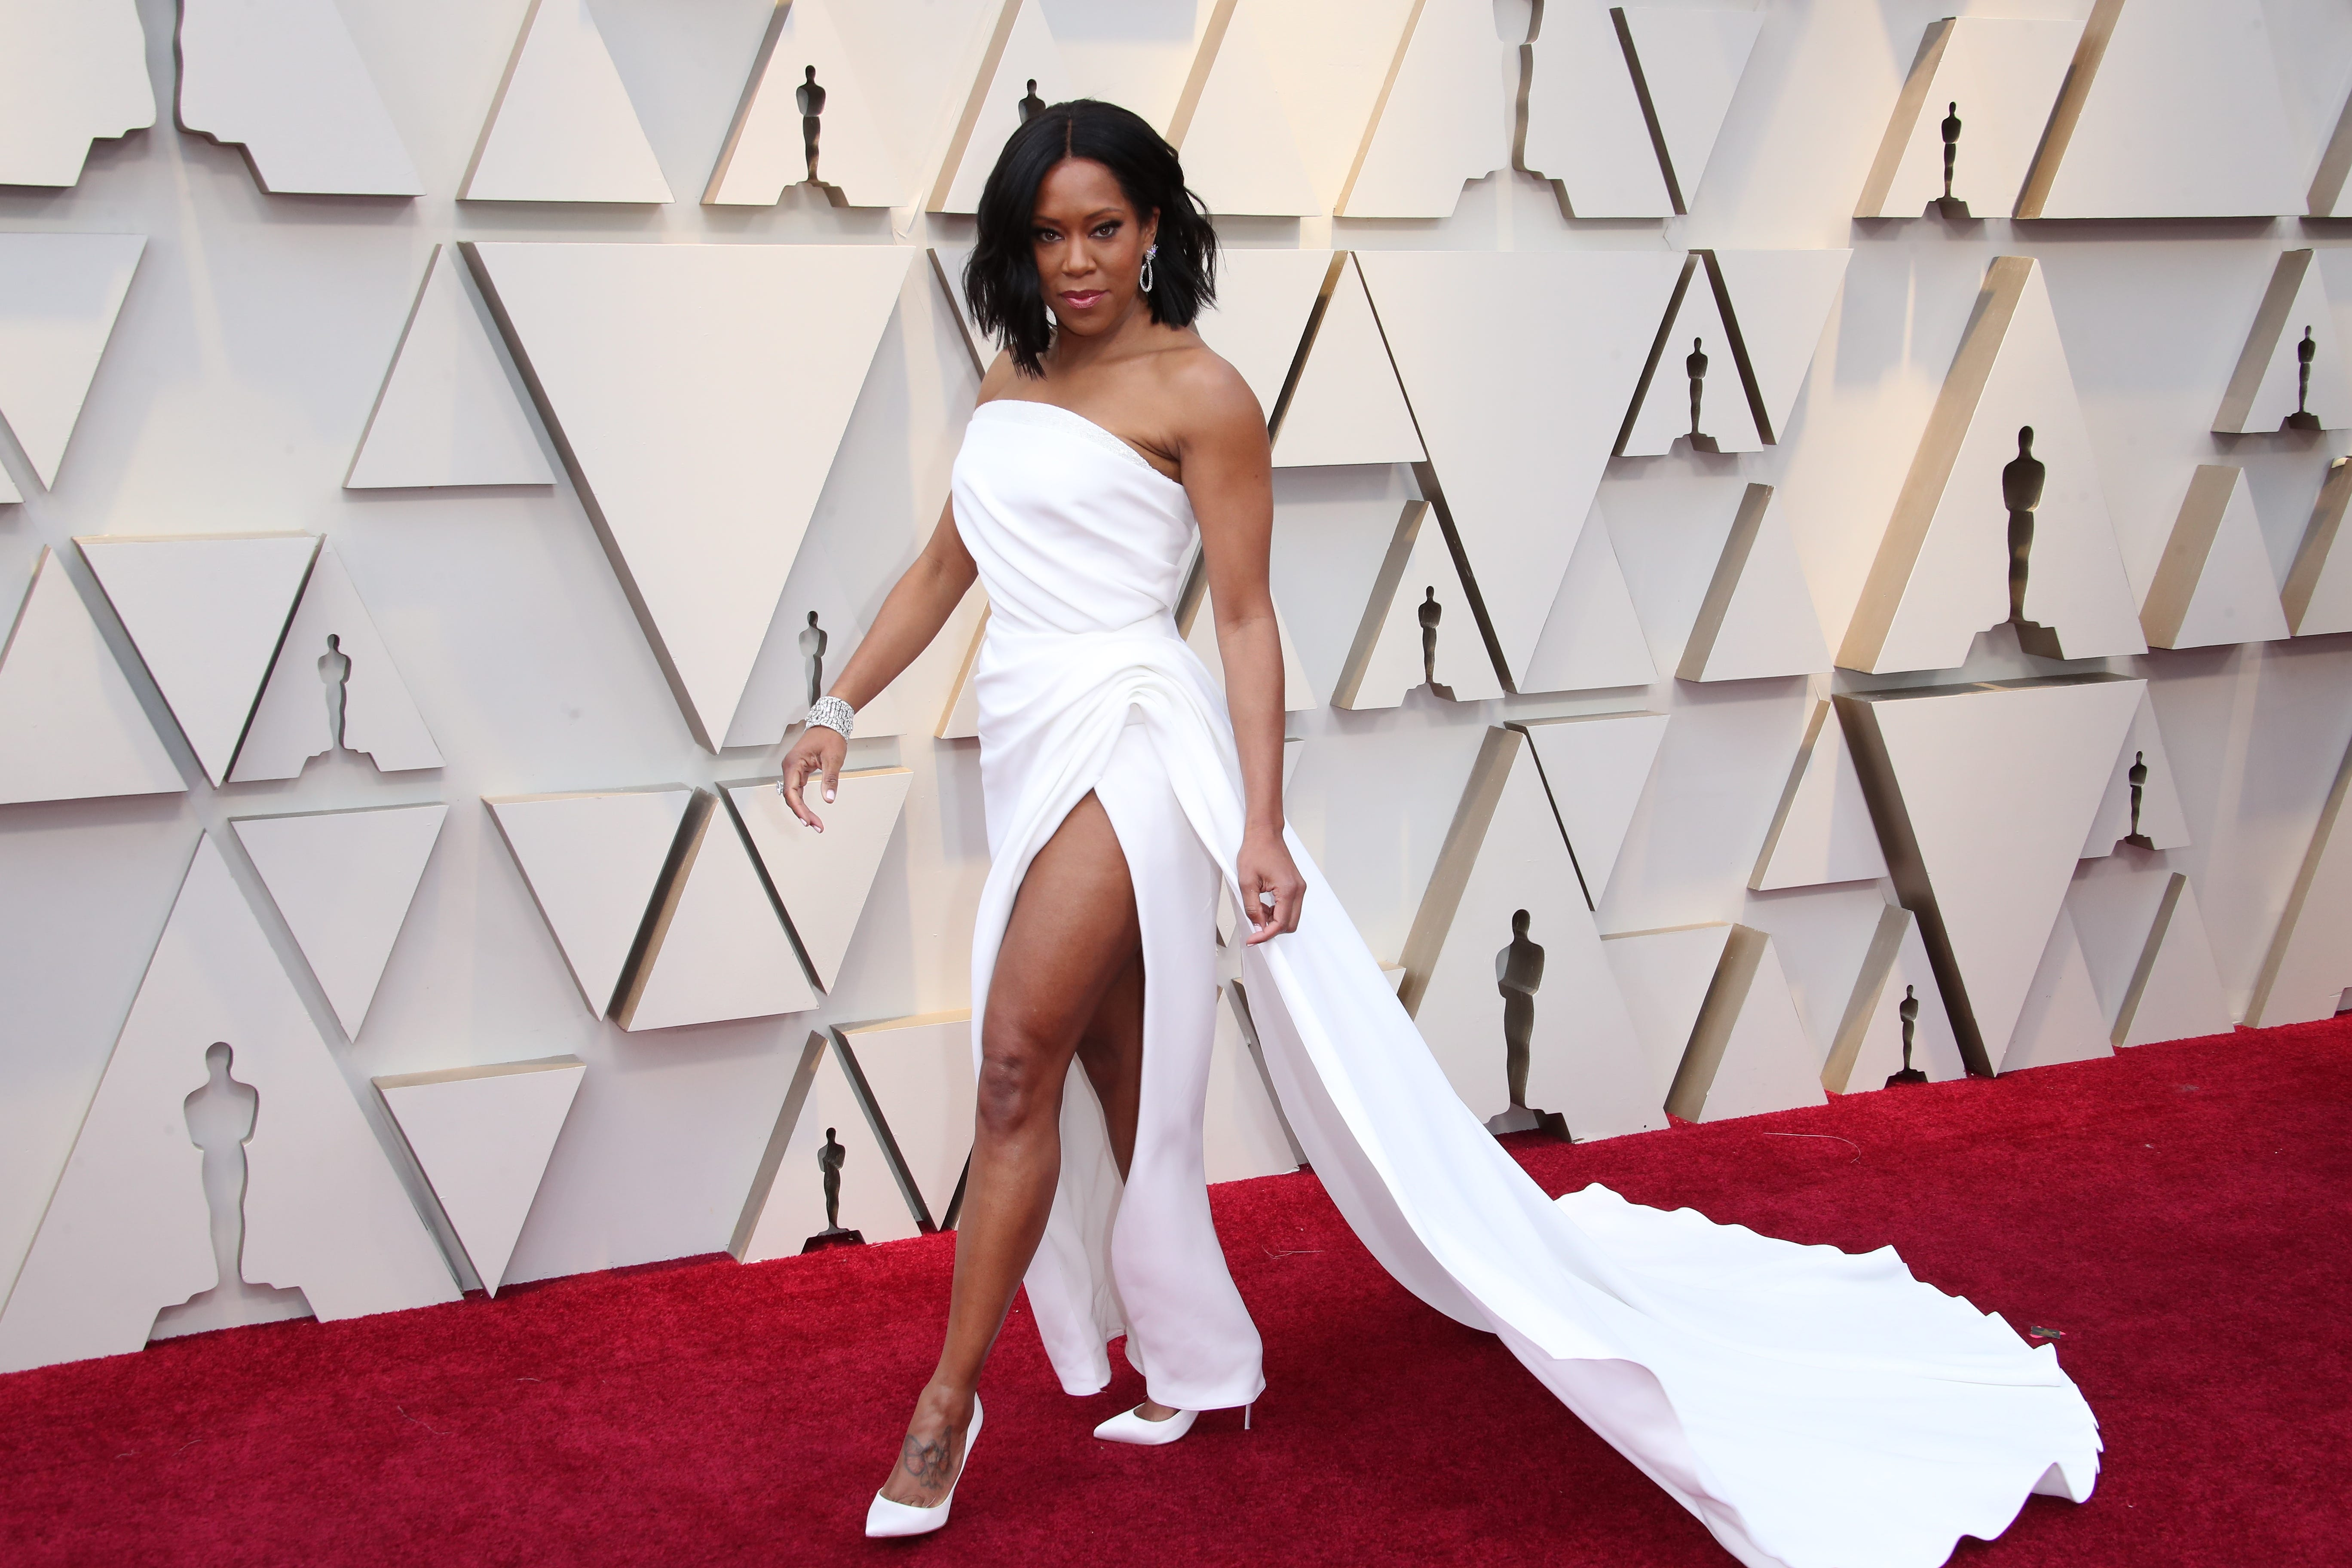 February 24, 2019; Los Angeles, CA, USA; Regina King arrives at the 91st Academy Awards at the Dolby Theatre. Mandatory Credit: Dan MacMedan-USA TODAY NETWORK (Via OlyDrop)